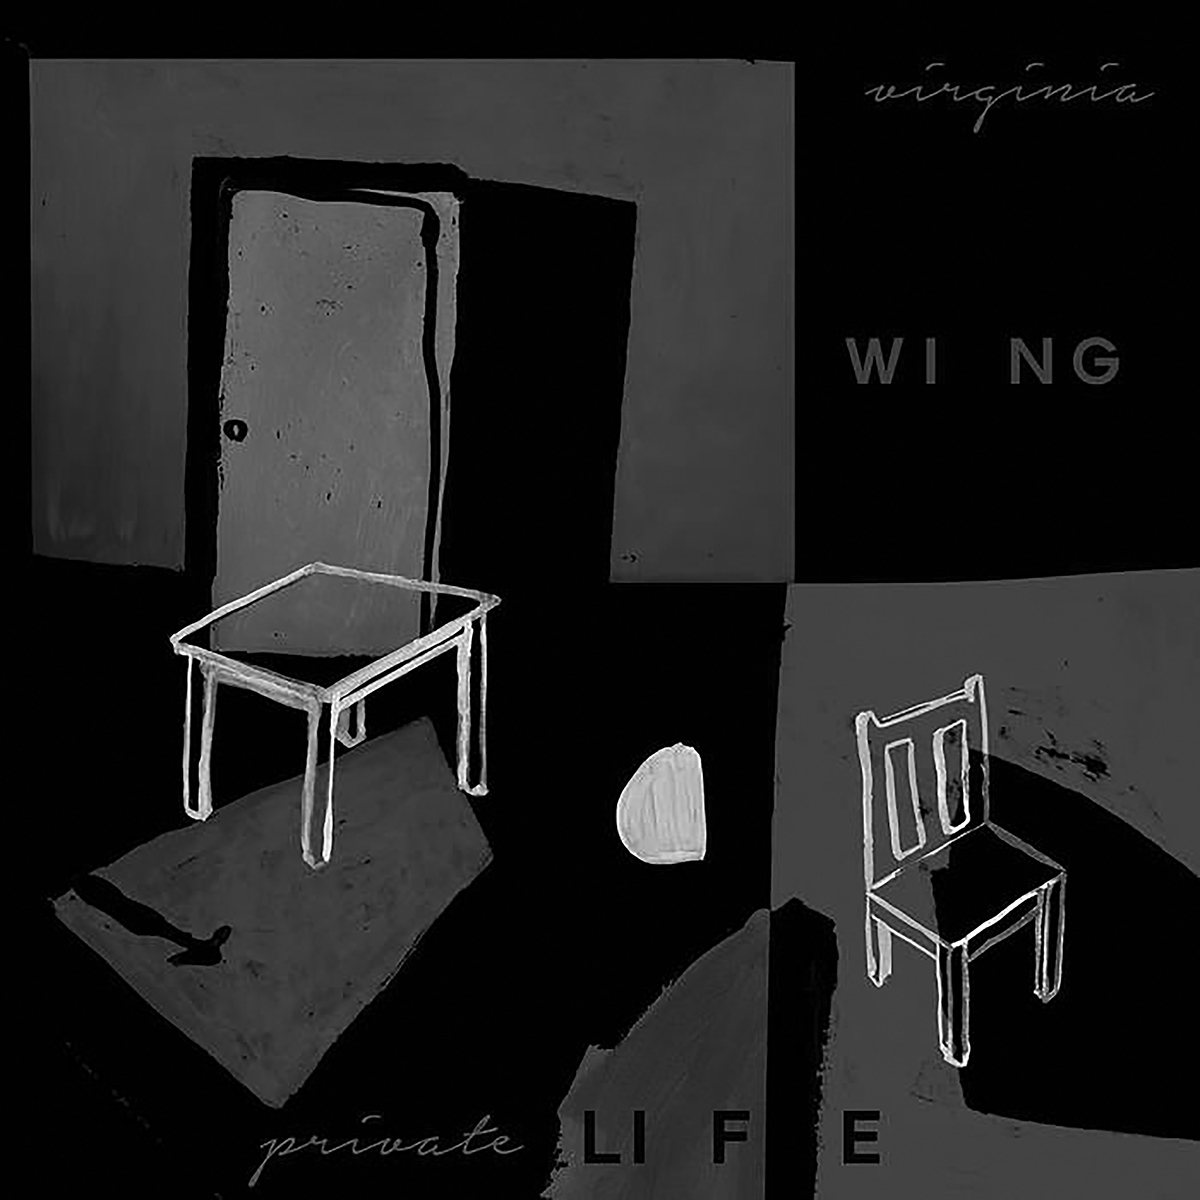 """Album cover for Private Life by Virginia Wing. It's a grayscale illustration of a chair and a table and a door, and the colors and shapes are blocky. There are 4 uneven quadrants that alternate background colors of black and gray. In the top right corner reads """"Virginia Wing"""" and at the bottom reads """"Private Life."""""""